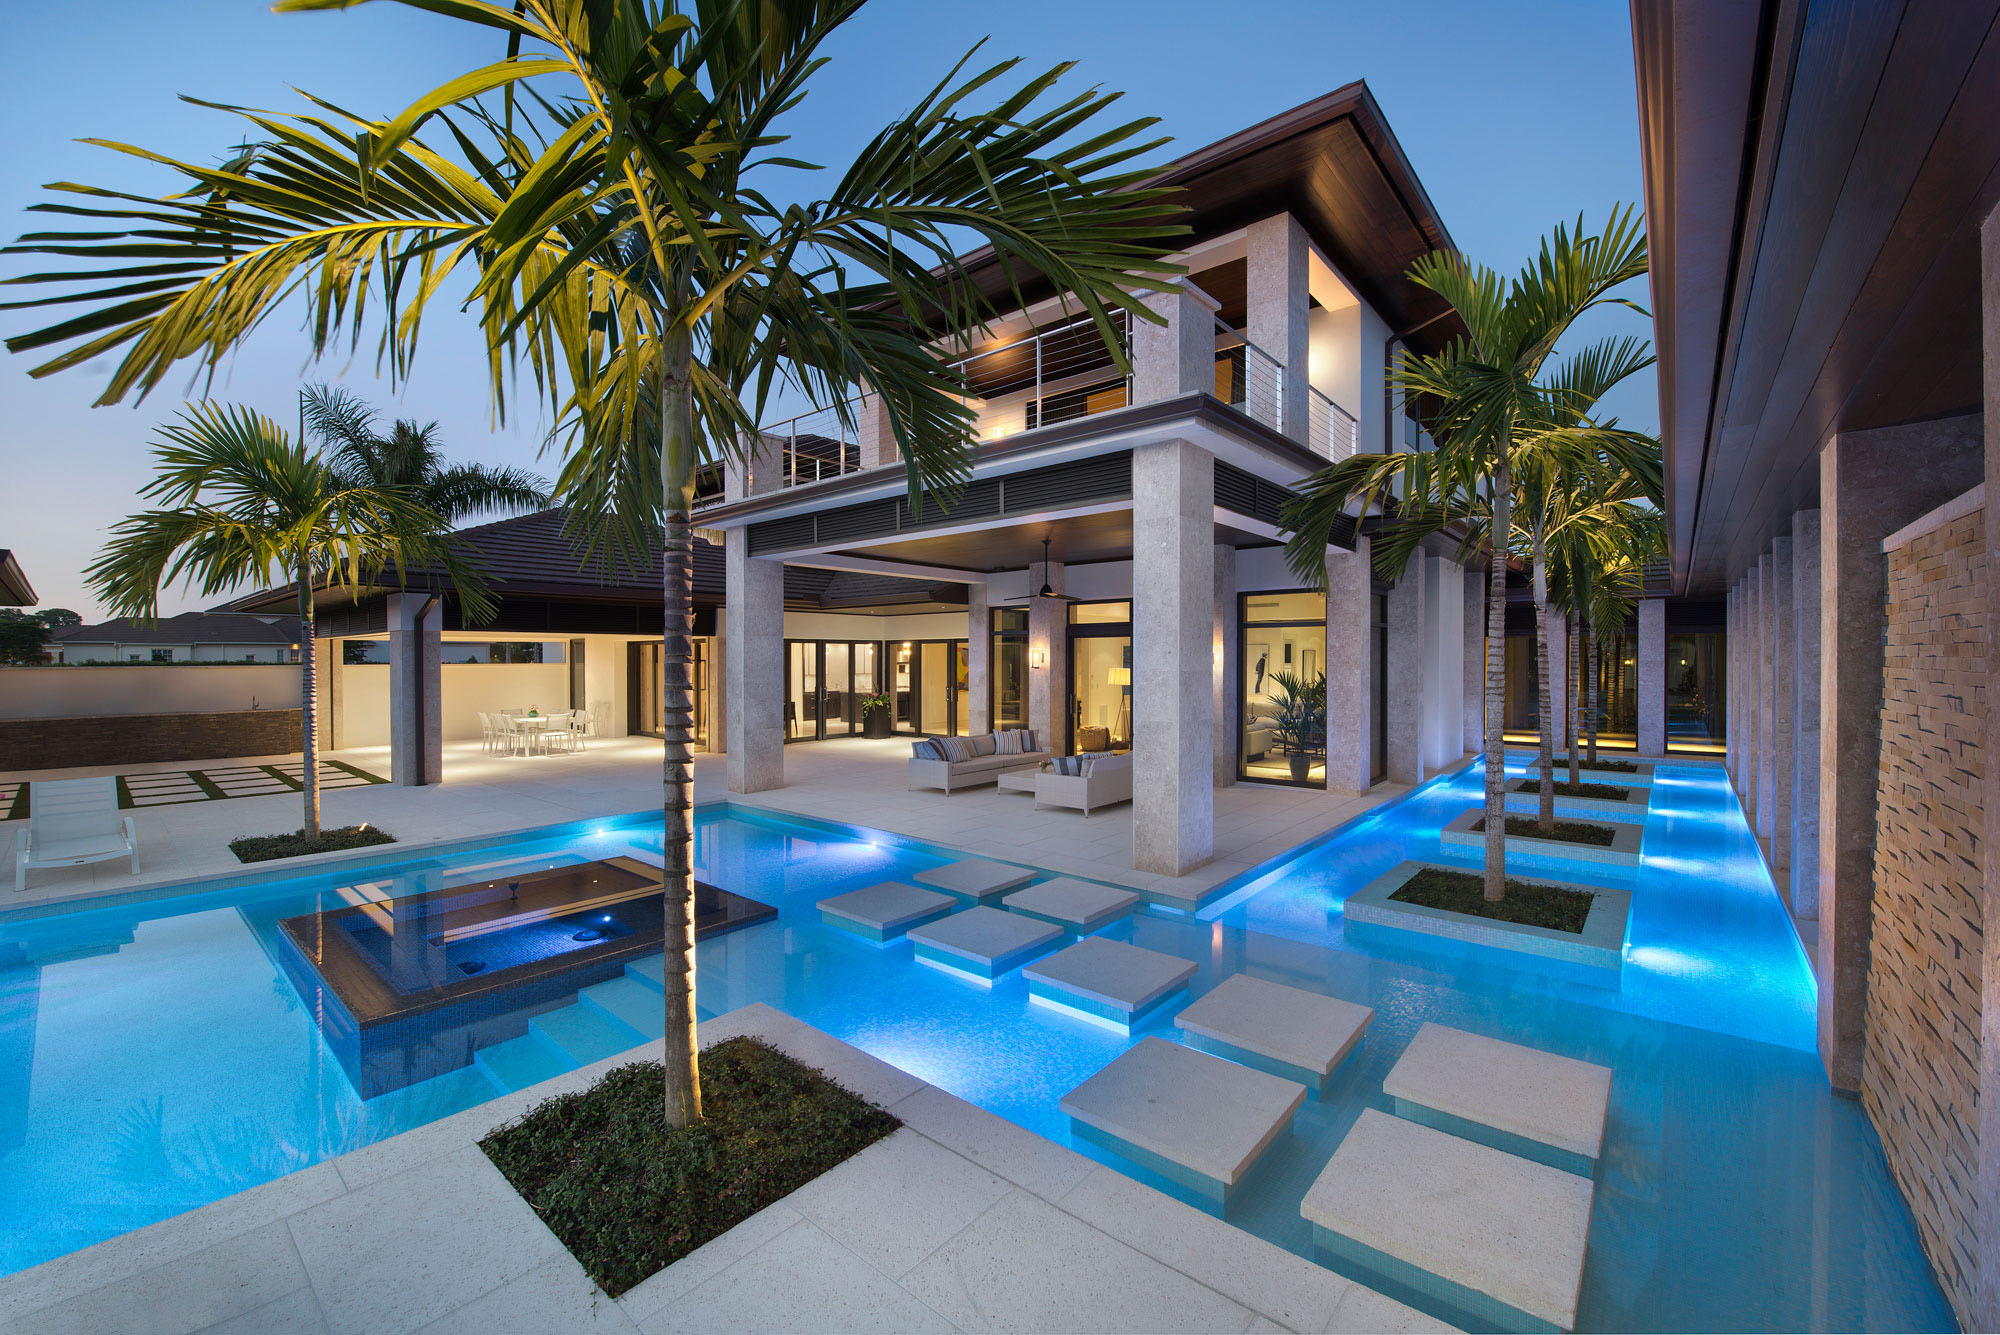 Custom dream home in florida with elegant swimming pool for Luxury home plans with pools